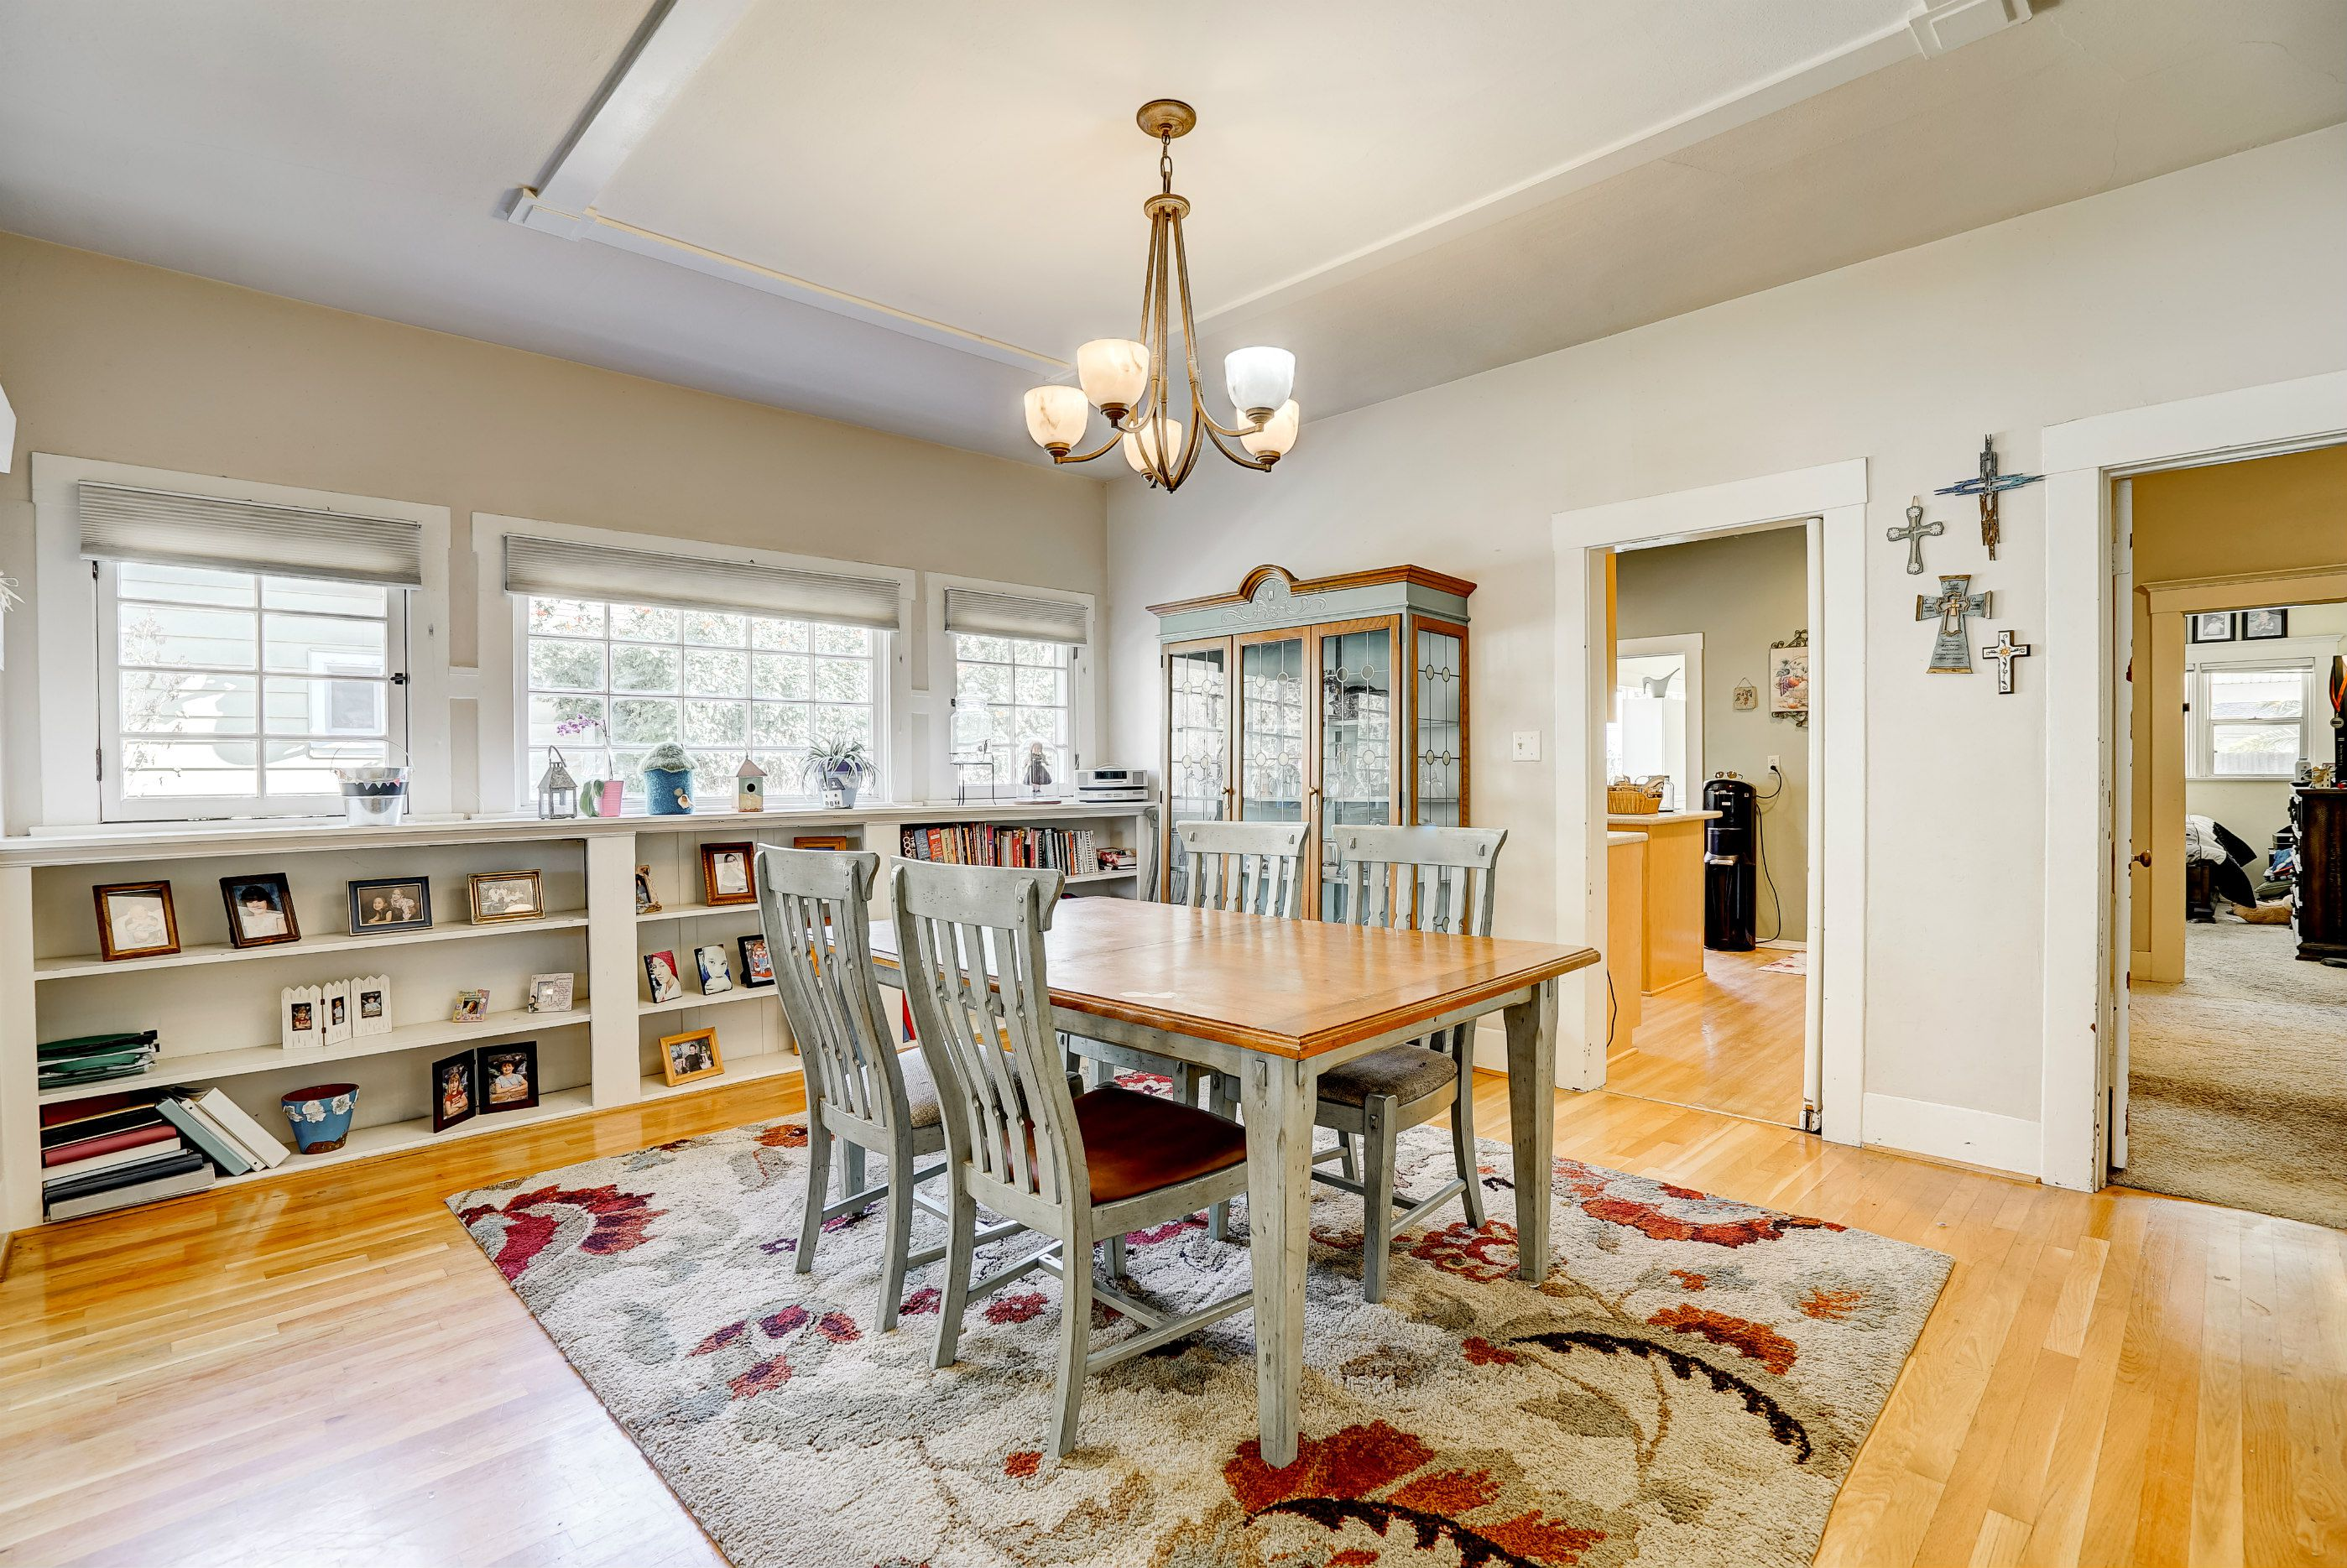 Large Formal Dining Room With Built In Bookshelves And Original Hutch On Inside Wall